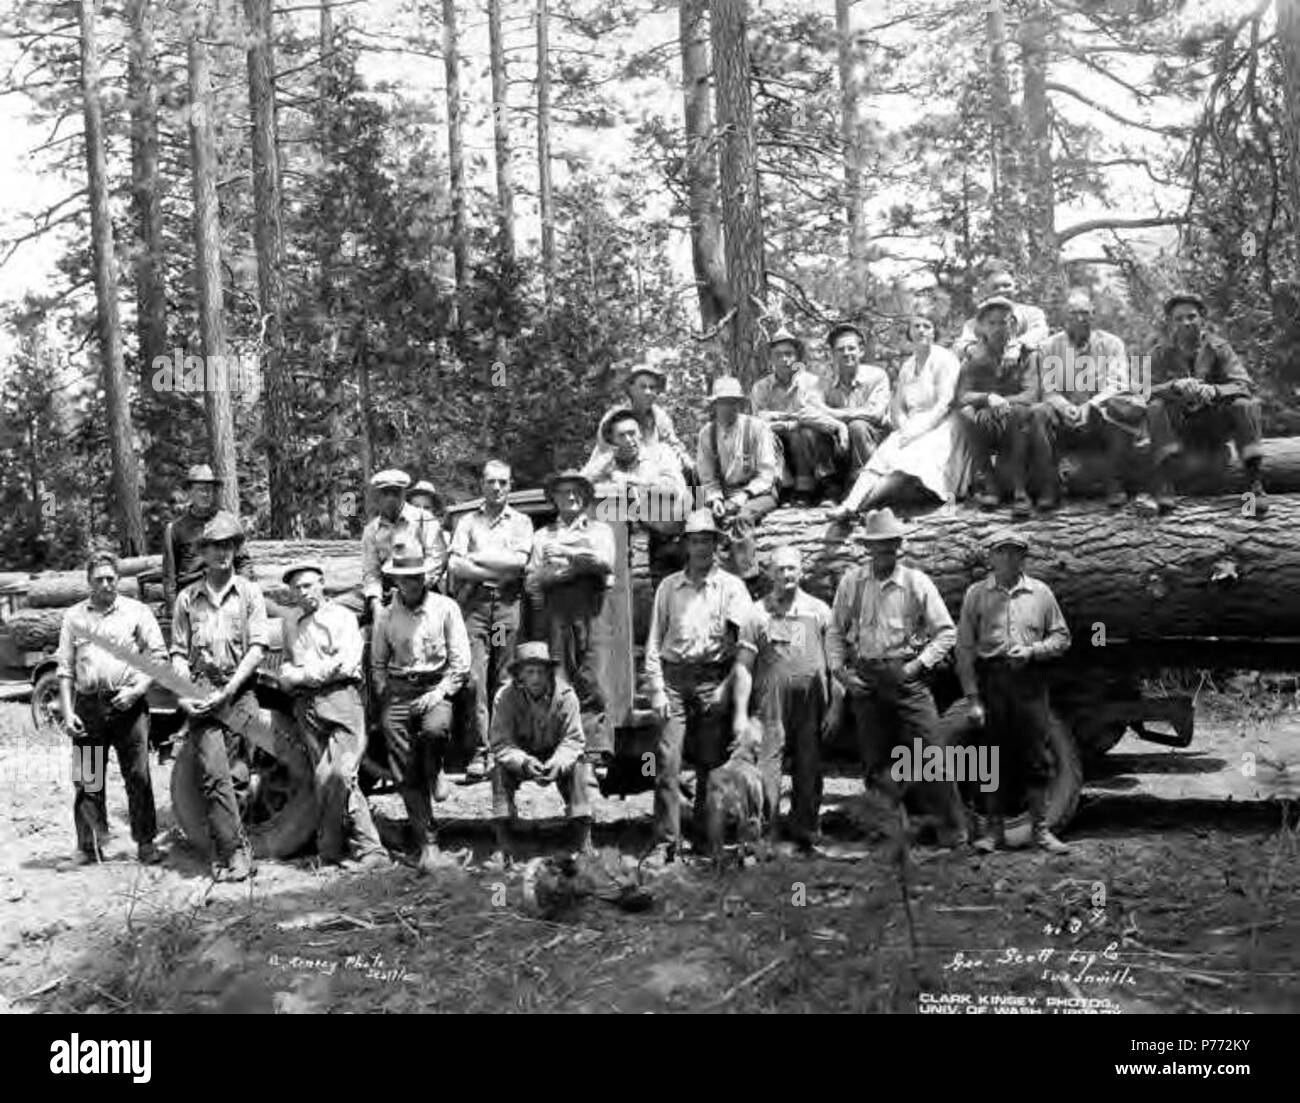 George kinsey stock photos george kinsey stock images alamy english crew posing with logging truck george scott lumber company susanville publicscrutiny Choice Image